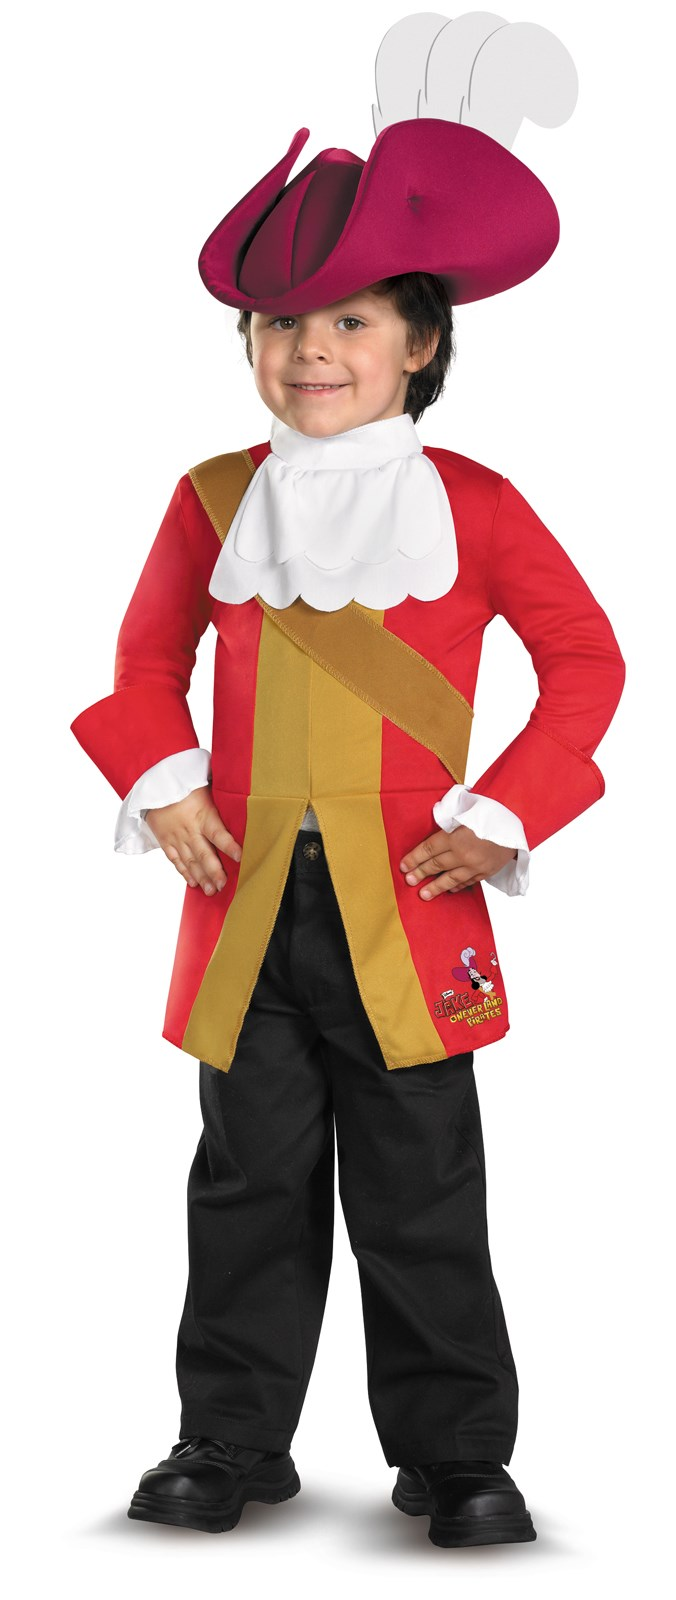 Disney Jake And The Neverland Pirates Captain Hook Toddler / Child Costume 3T-4T